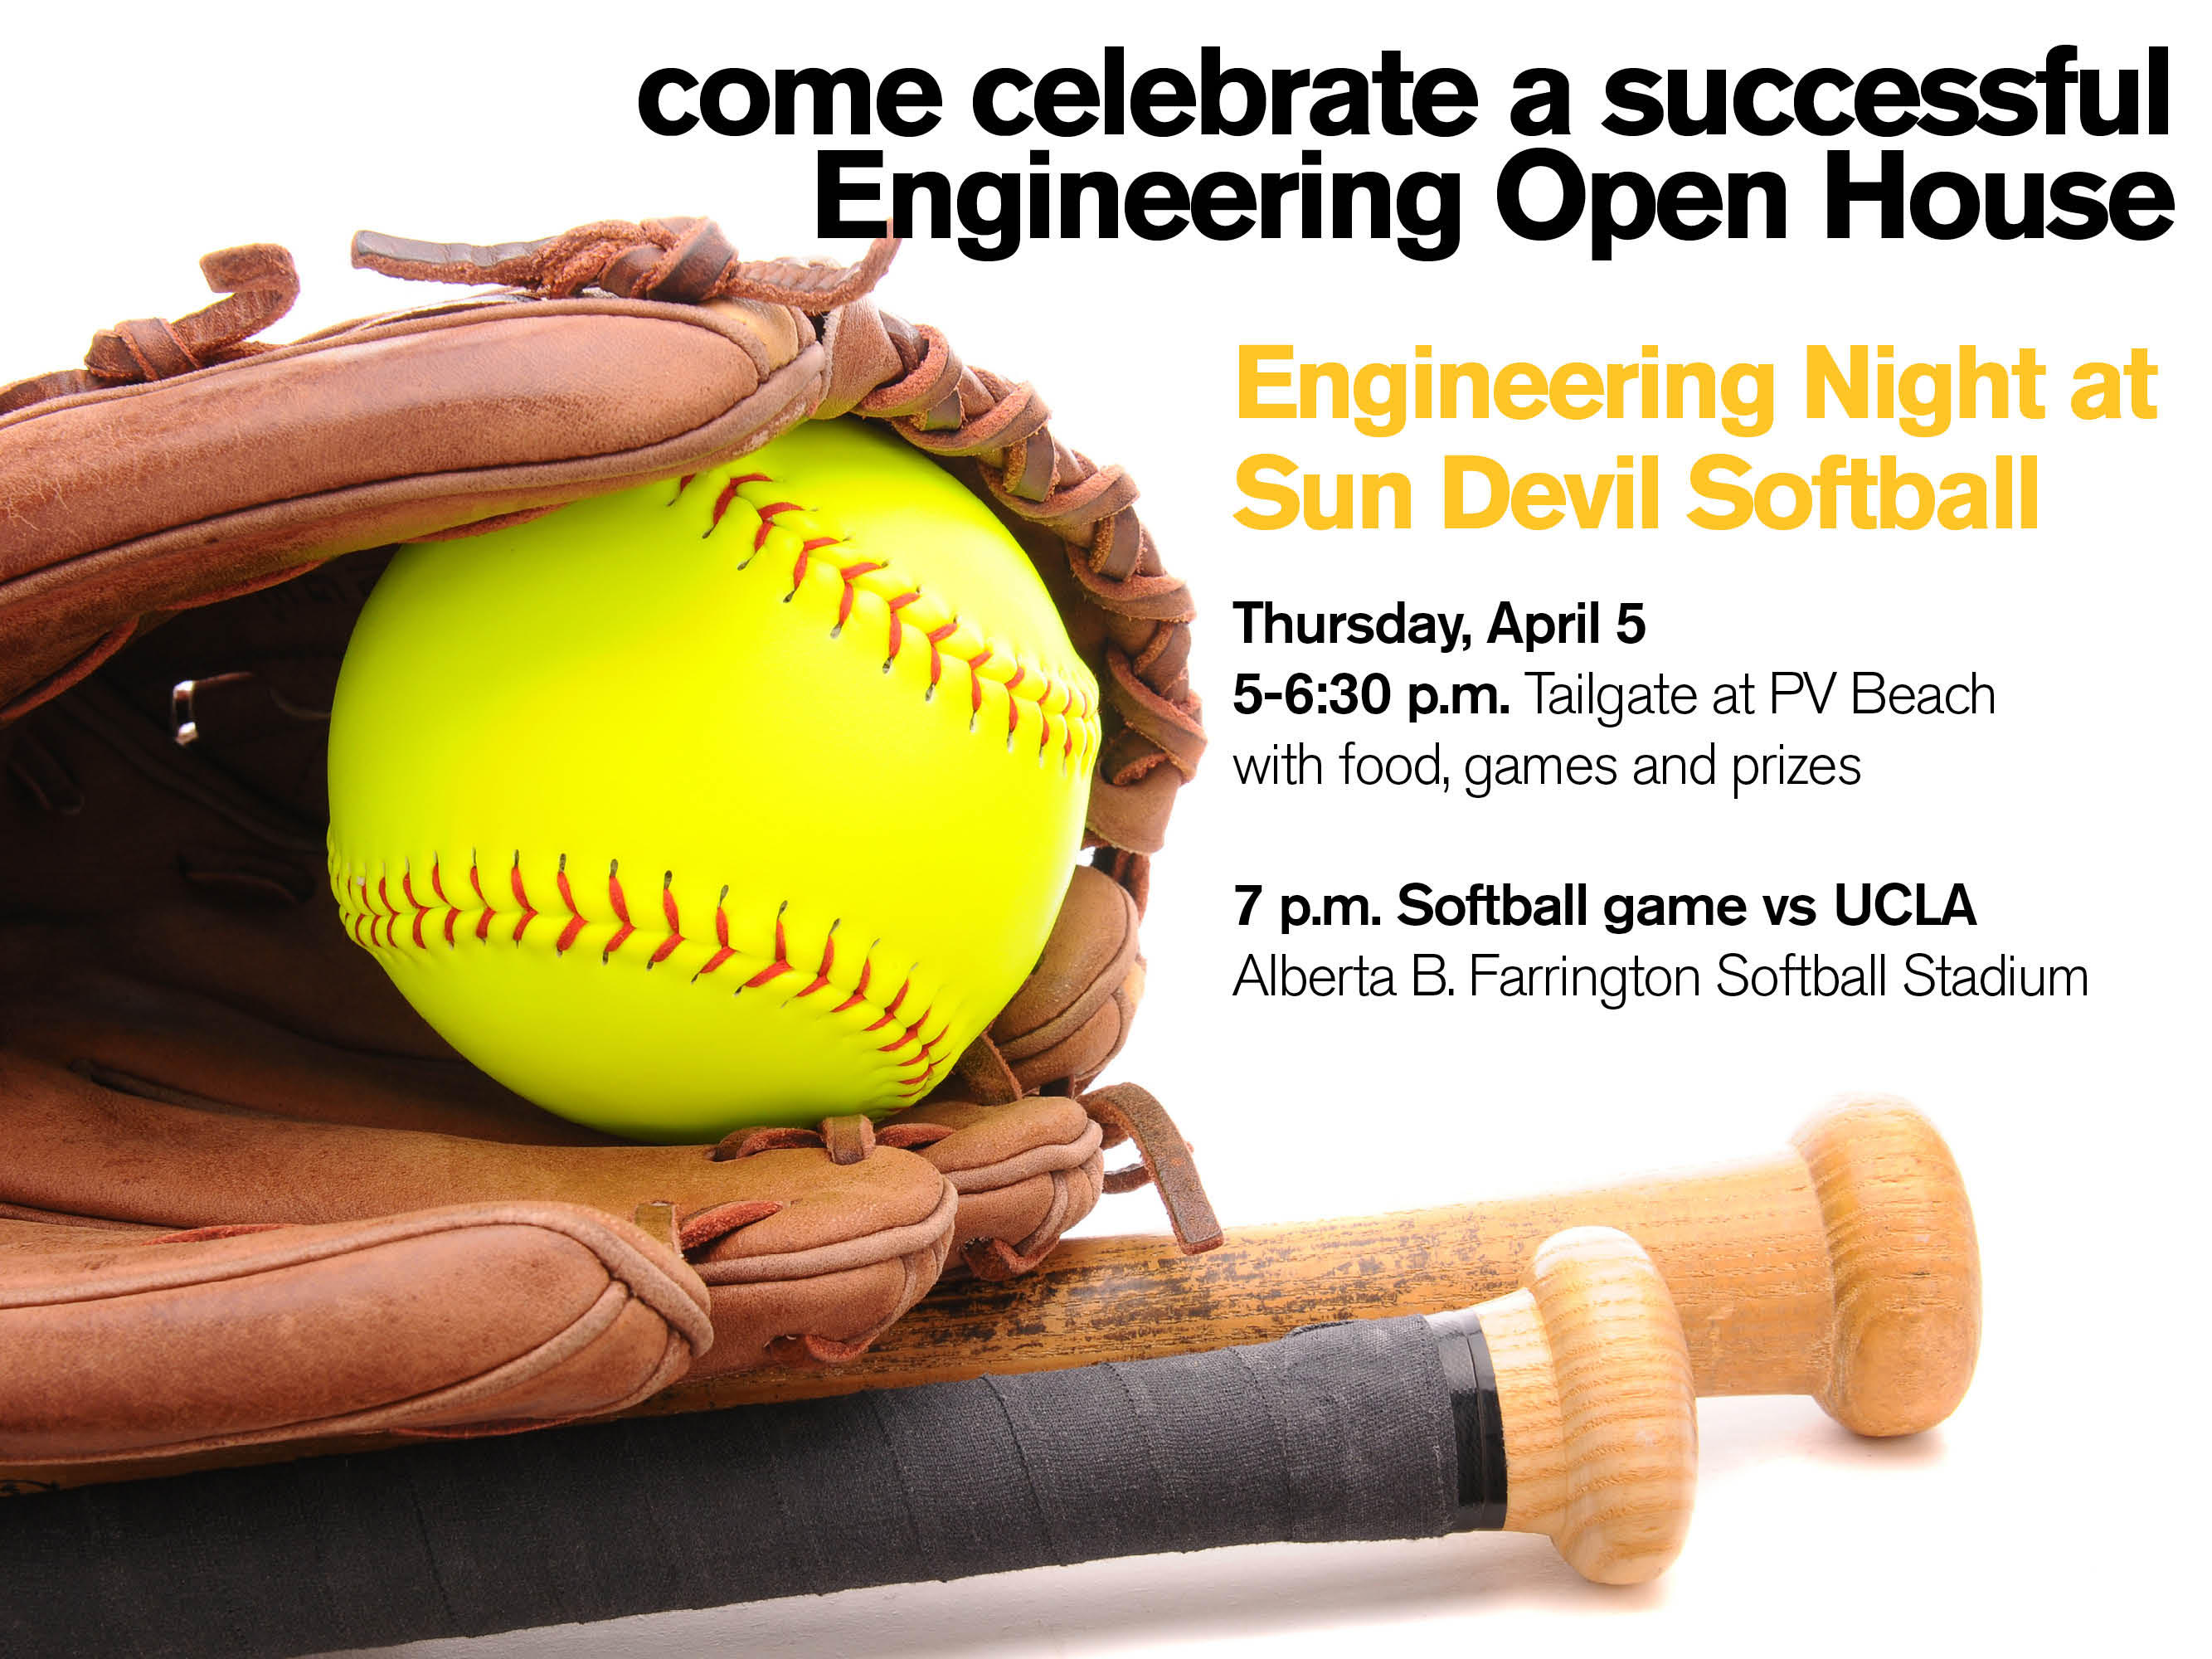 Come celebrate a successful Engineering Open House